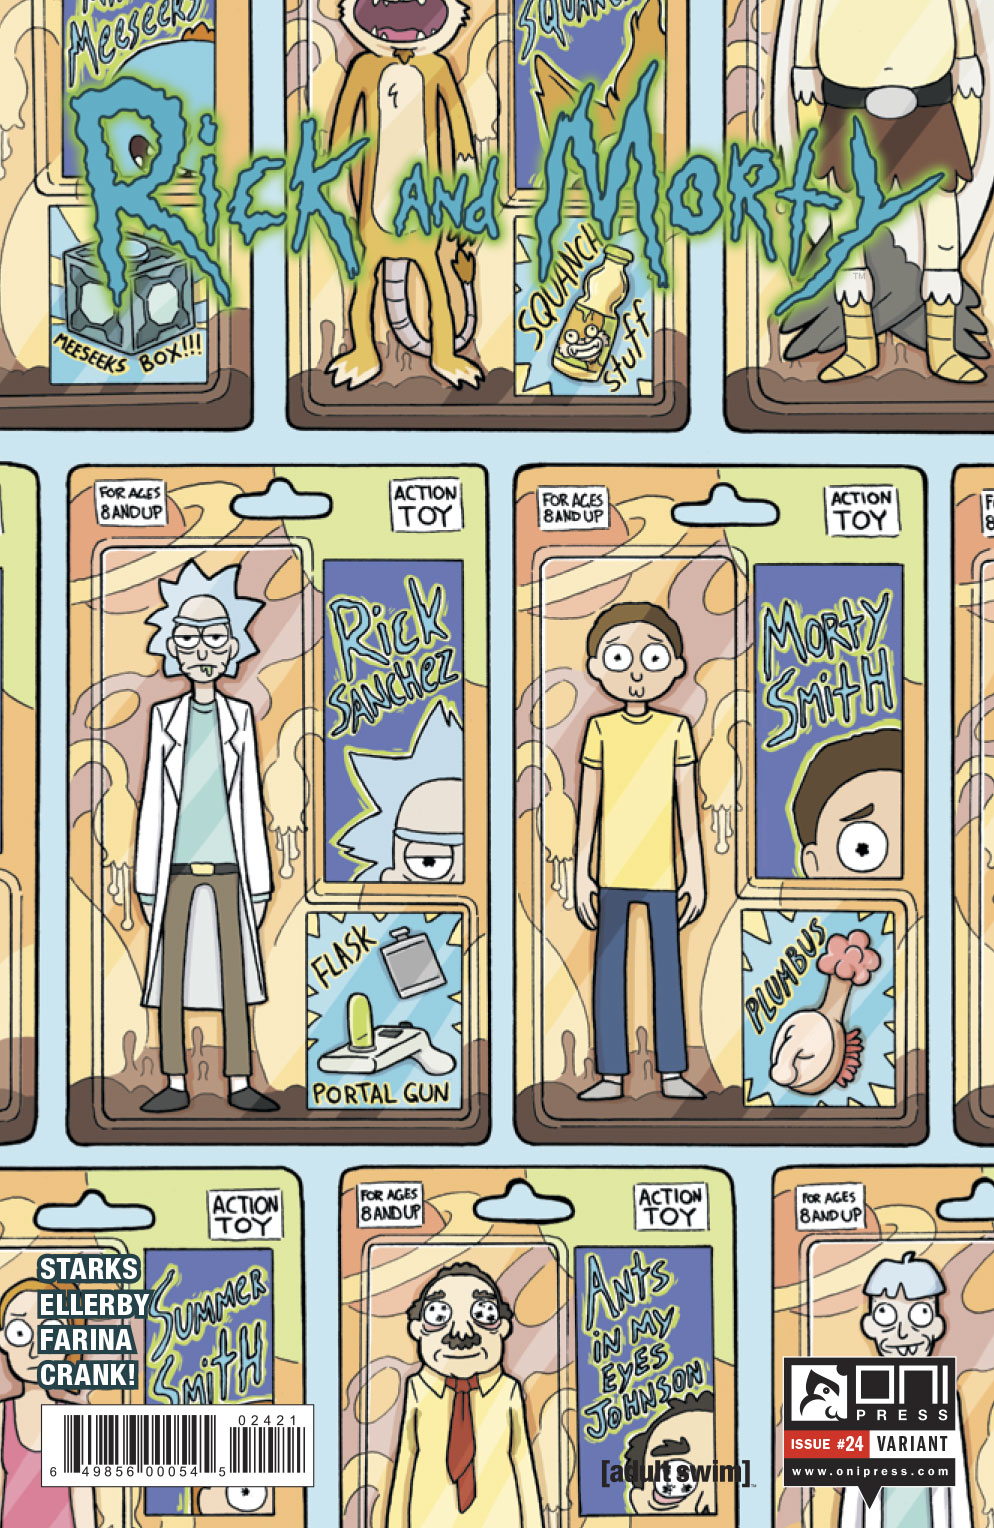 Rick and Morty #24 Review